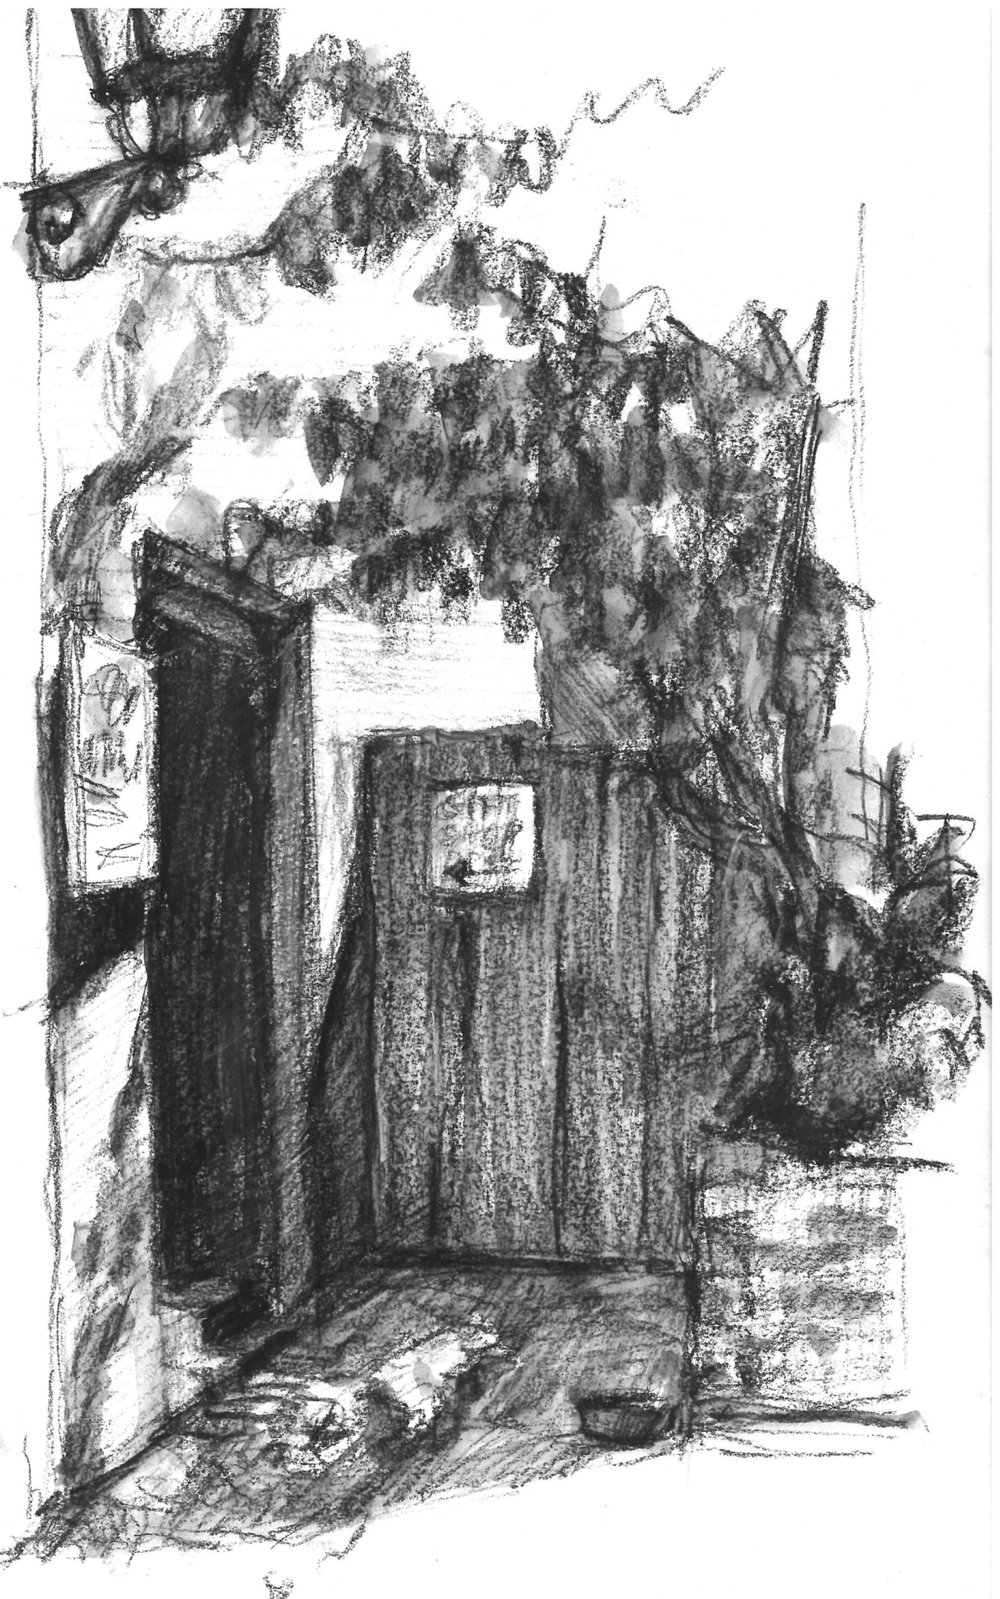 Sketch of the doorway across Aviles Street while waiting for breakfast at La Herencia Cafe in St. Augustine.